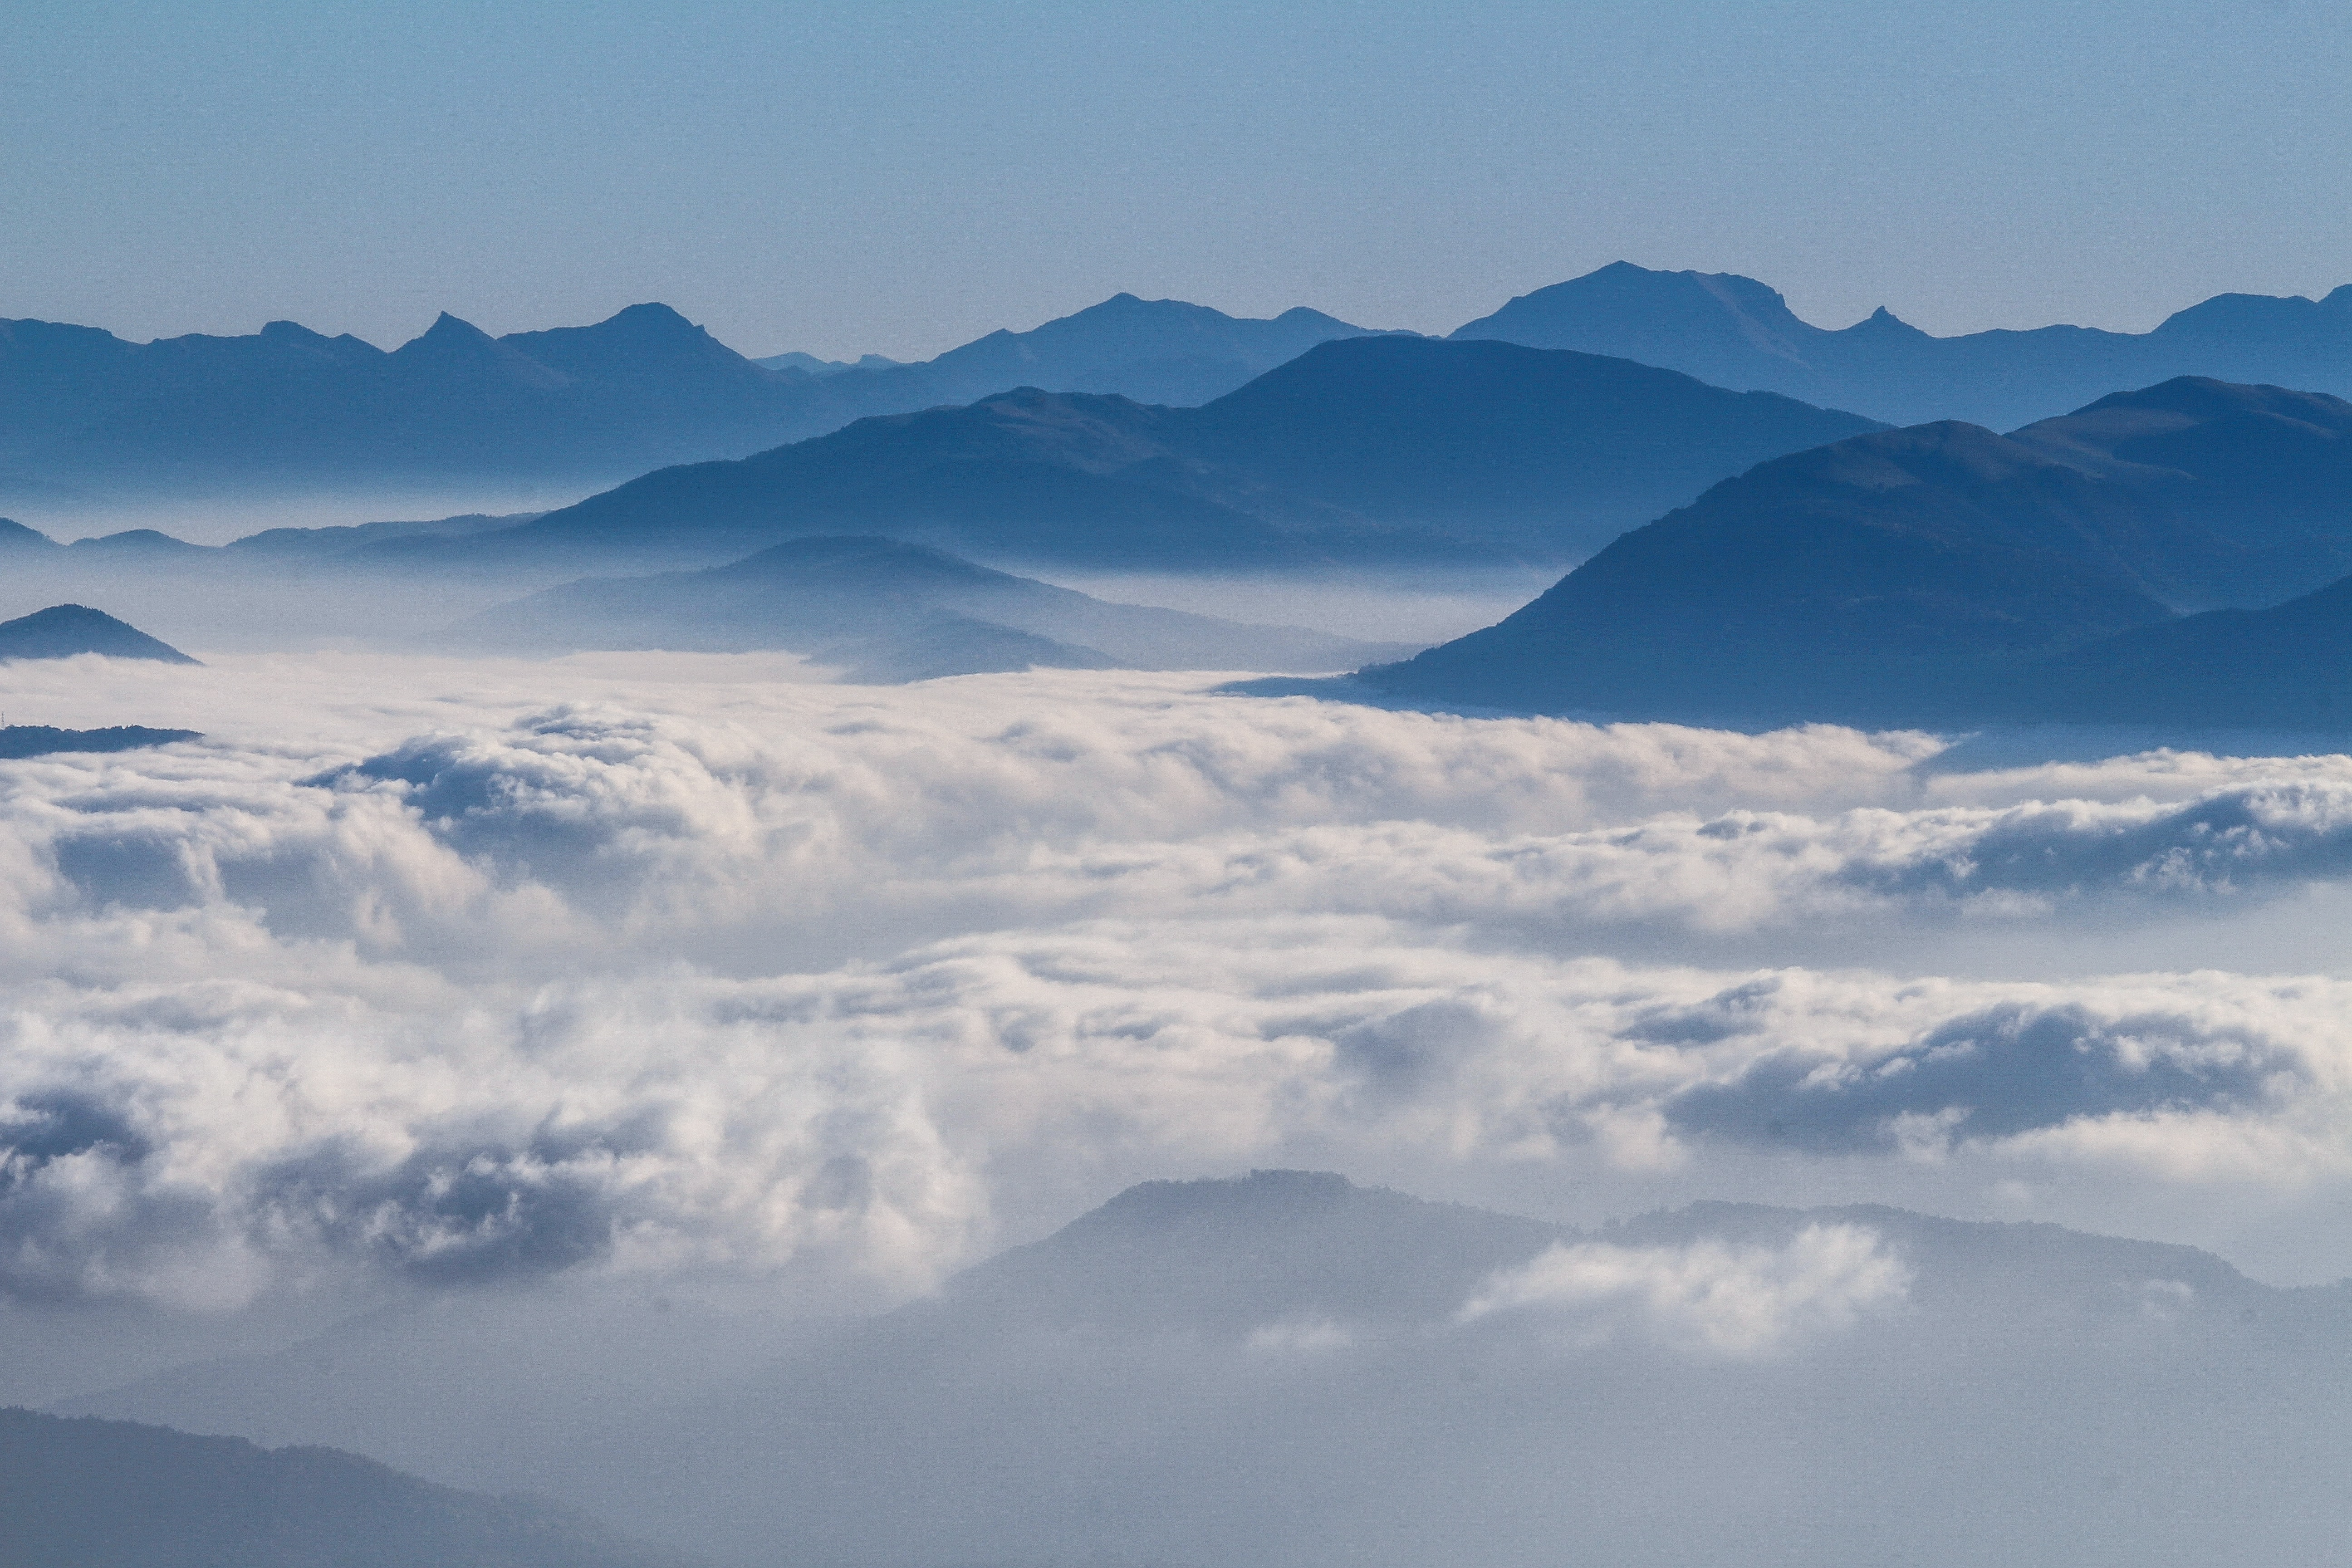 gray mountains surrounded by clouds in aerial photography